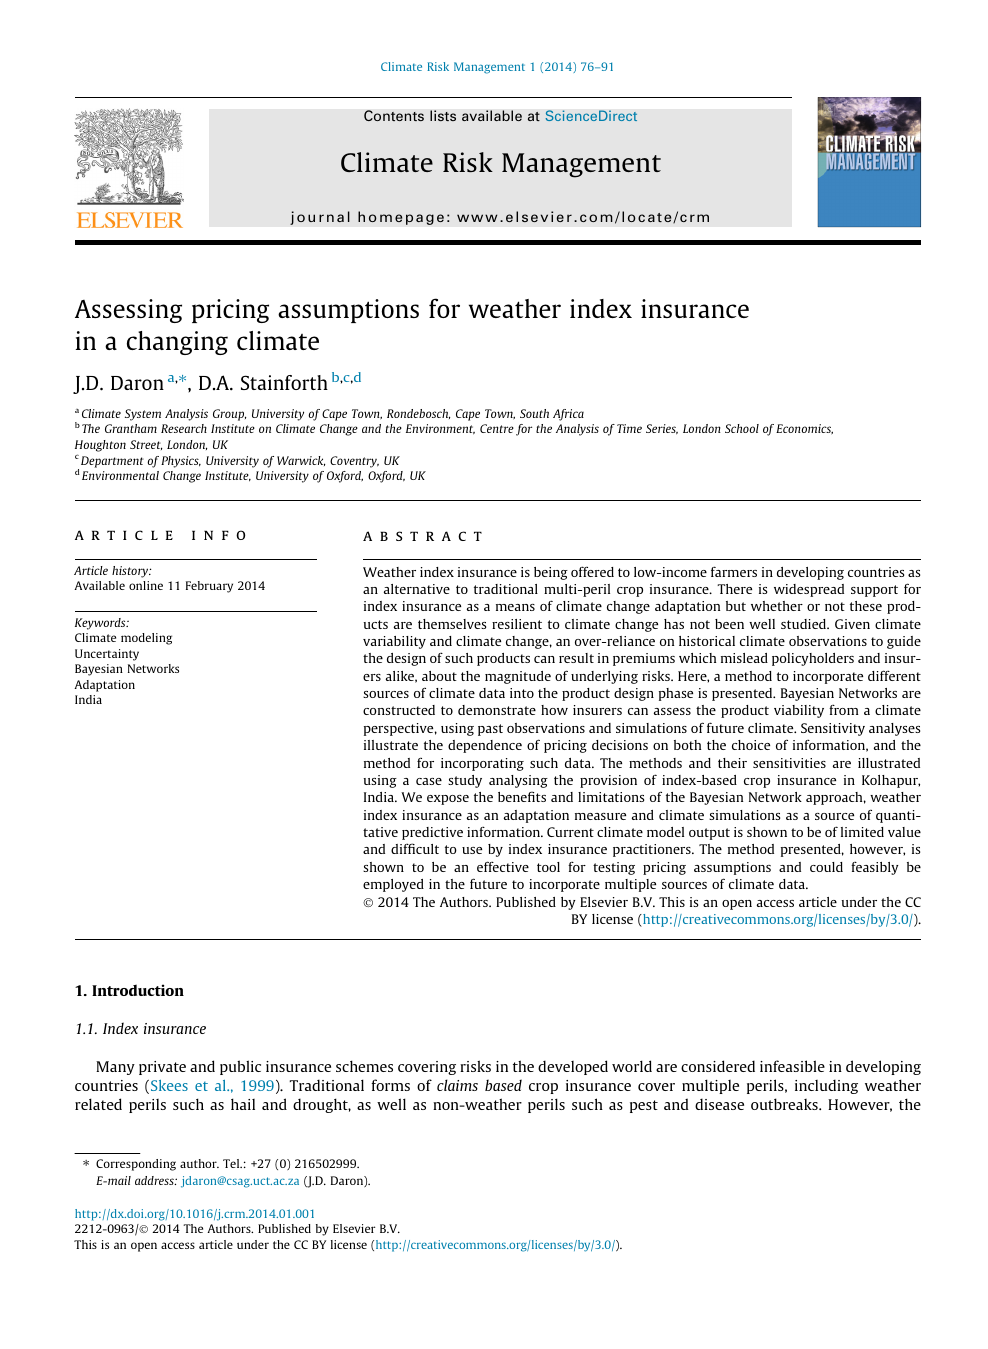 Assessing pricing assumptions for weather index insurance in a